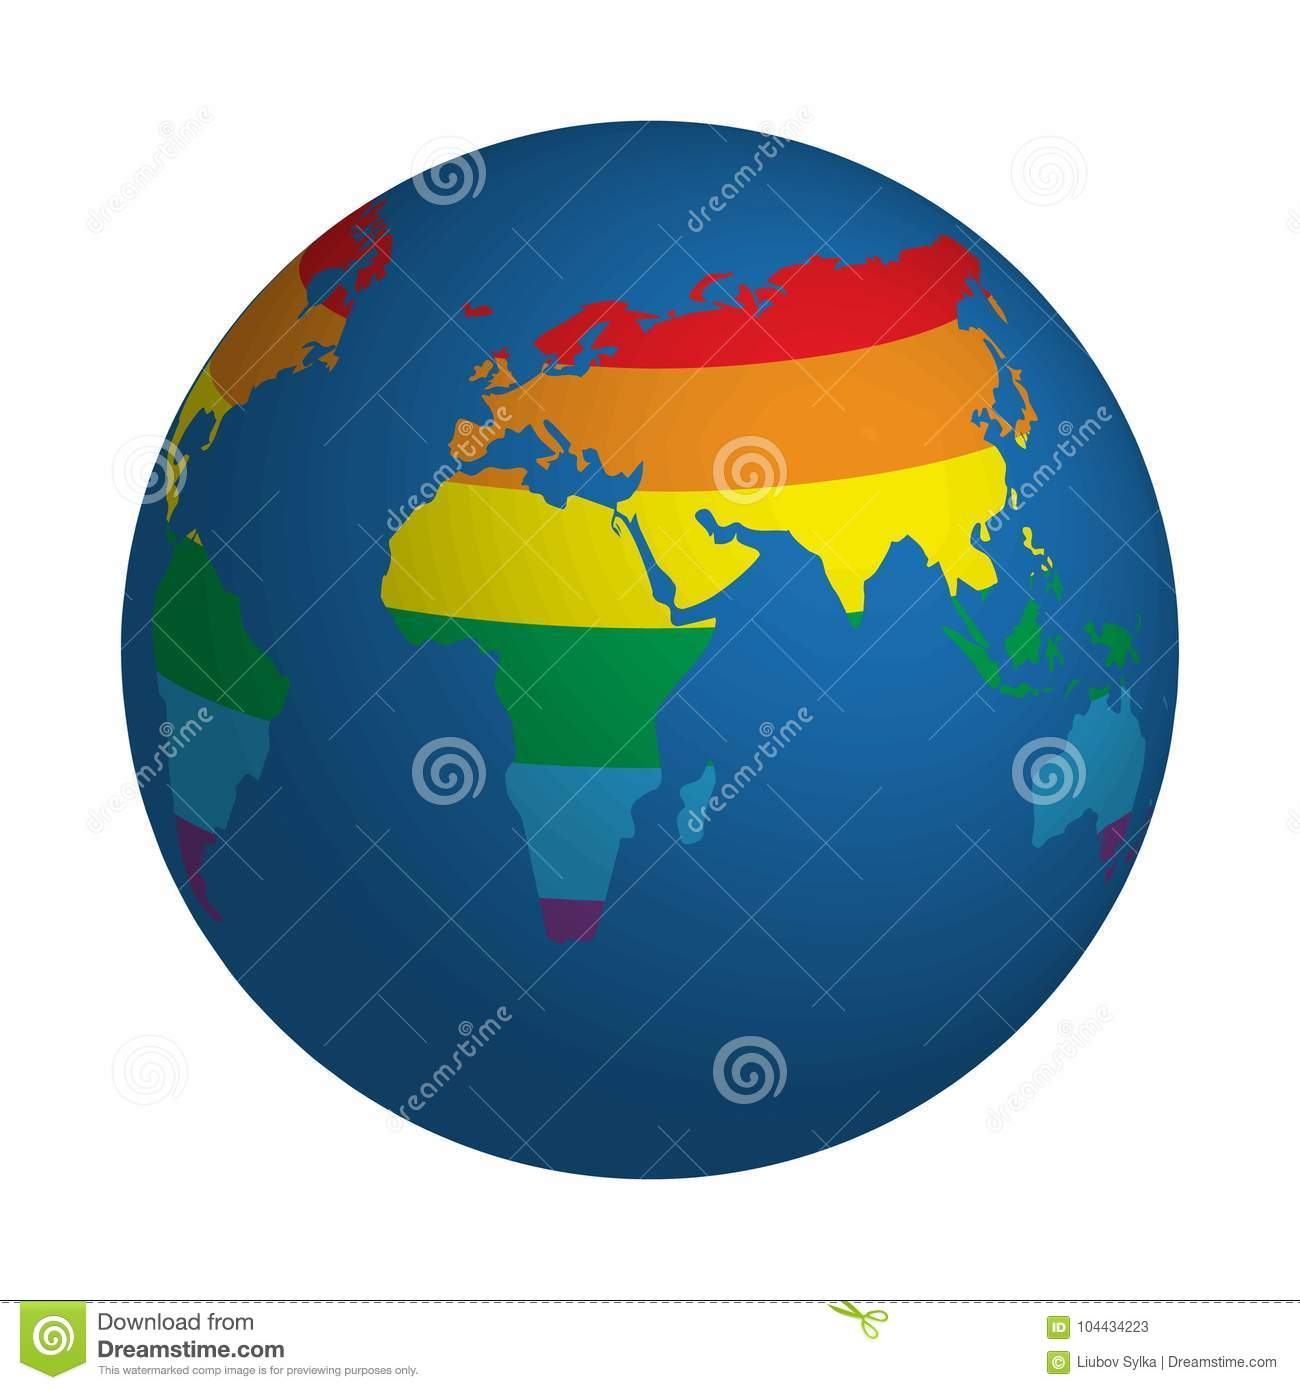 Globe symbol with lgbt rainbow colored world map icon of earth download comp gumiabroncs Choice Image